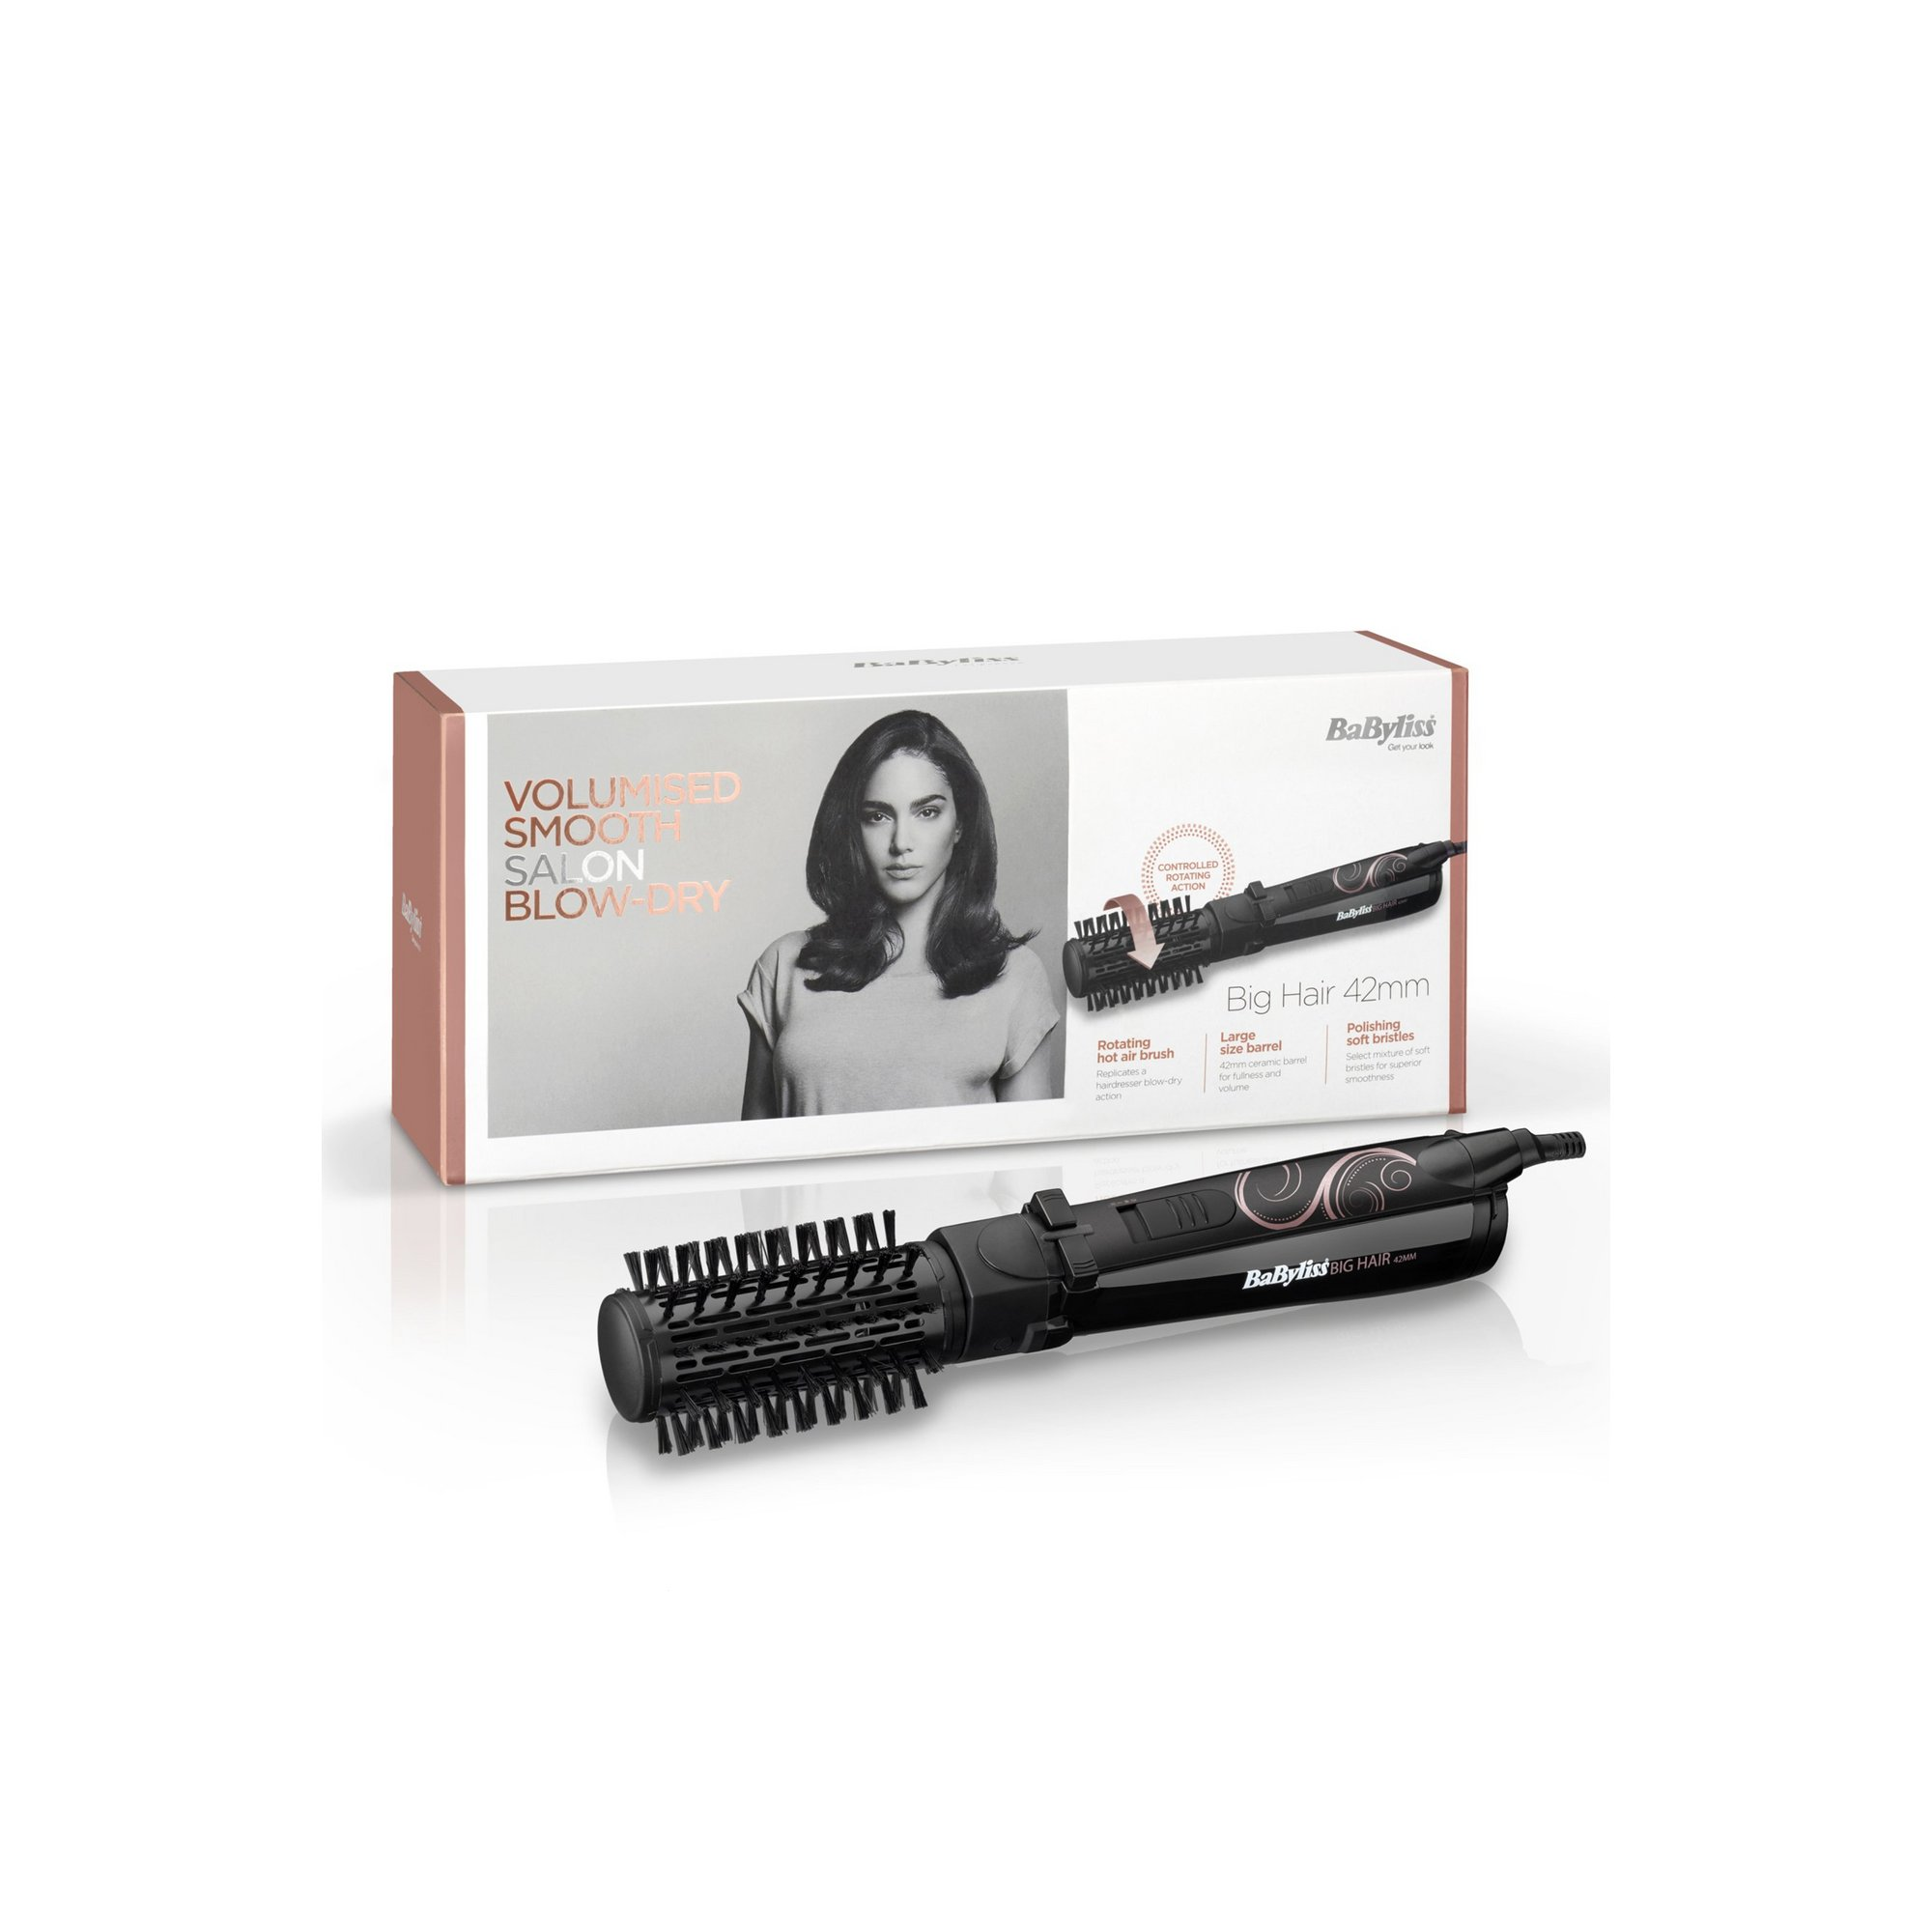 Image of BaByliss Big Hair 42mm Hot Air Brush